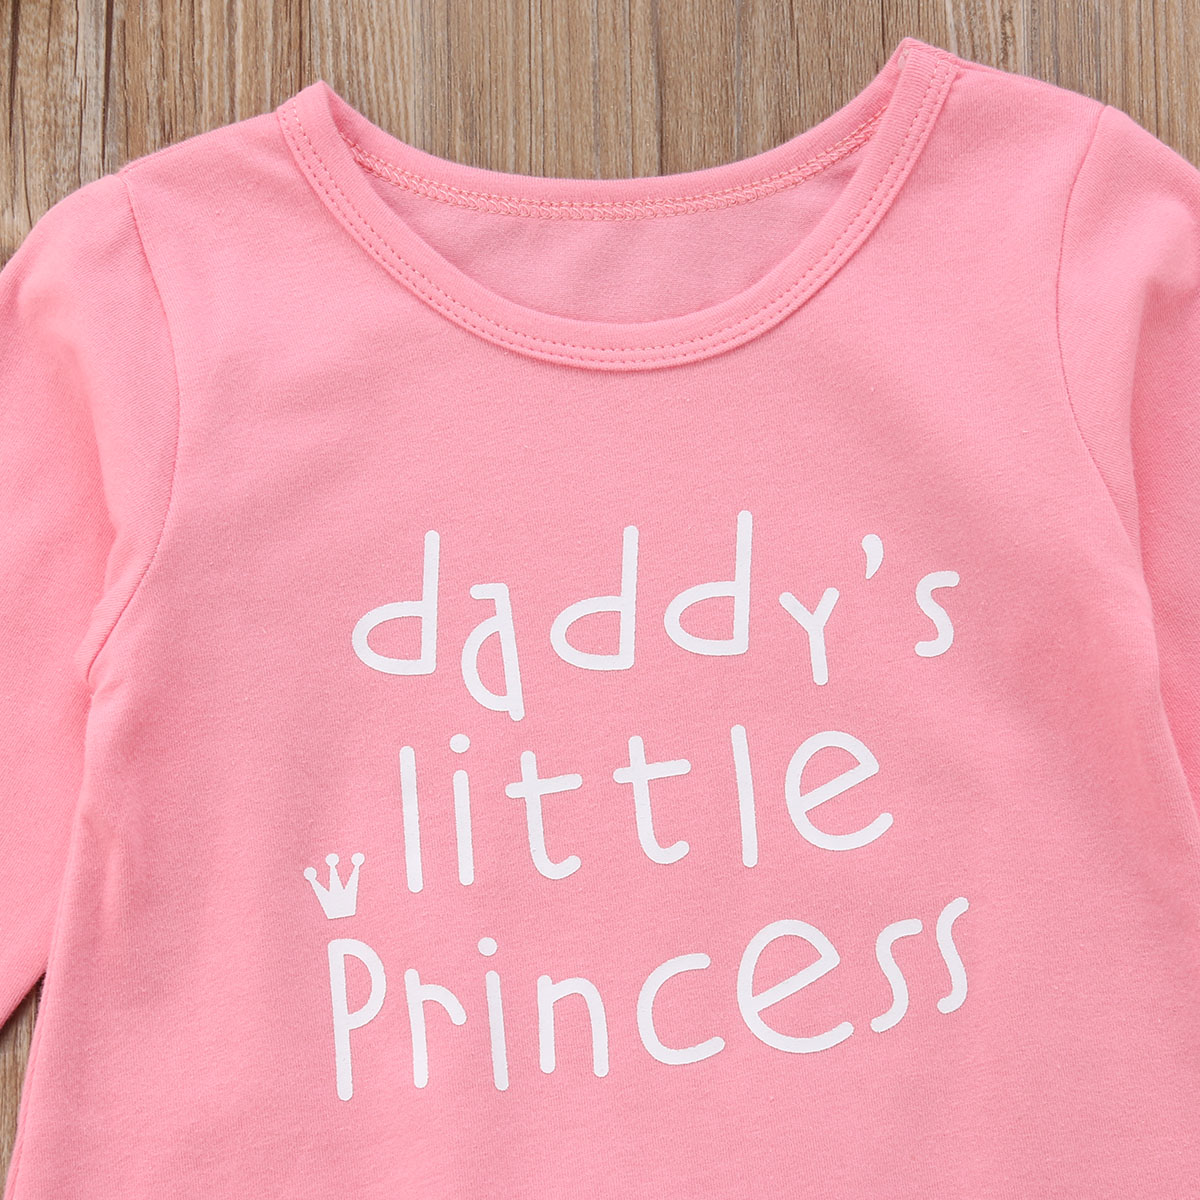 afeaae09df3 2Pcs Newborn Baby Girl Daddy s Little Princess Jumpsuit Infant Long Sleeve  Romper + Headband Outfit Set-in Rompers from Mother   Kids on  Aliexpress.com ...